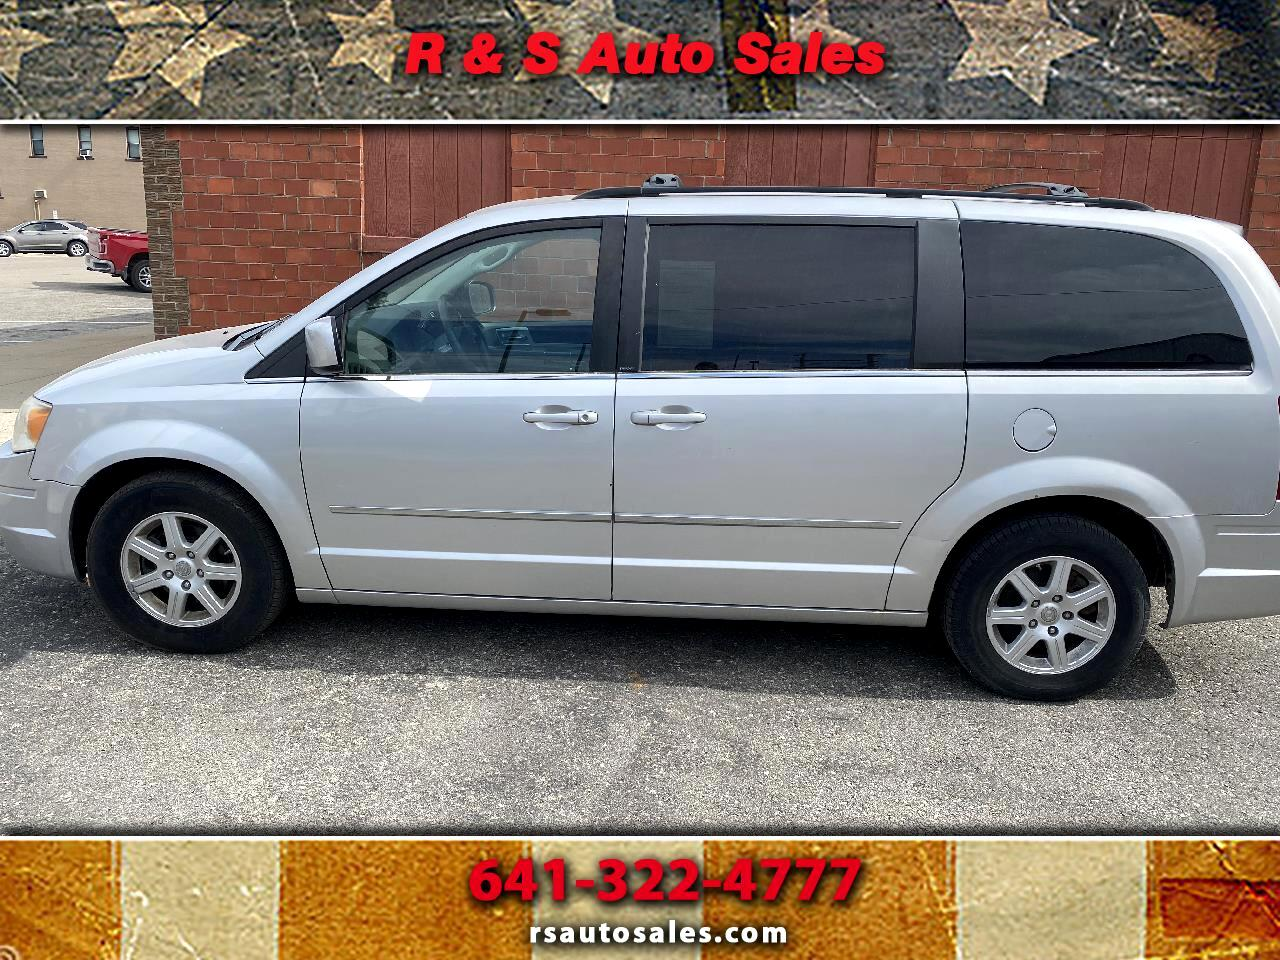 2010 Chrysler Town & Country Corning IA